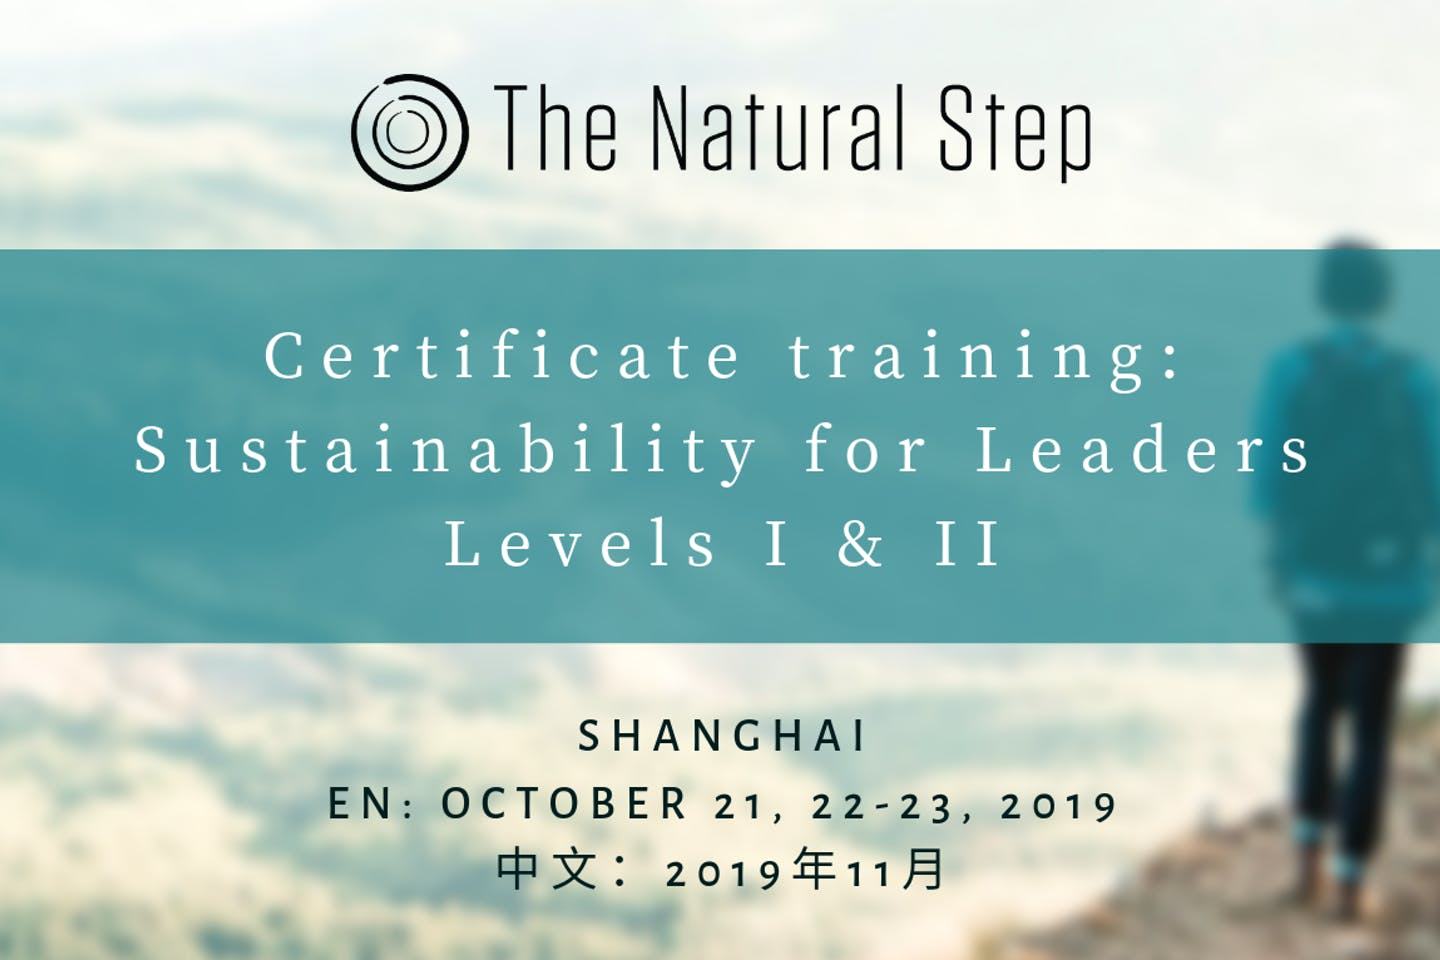 The Natural Step Certificate Sustainability Training: Sustainability for Leaders, Levels I & II